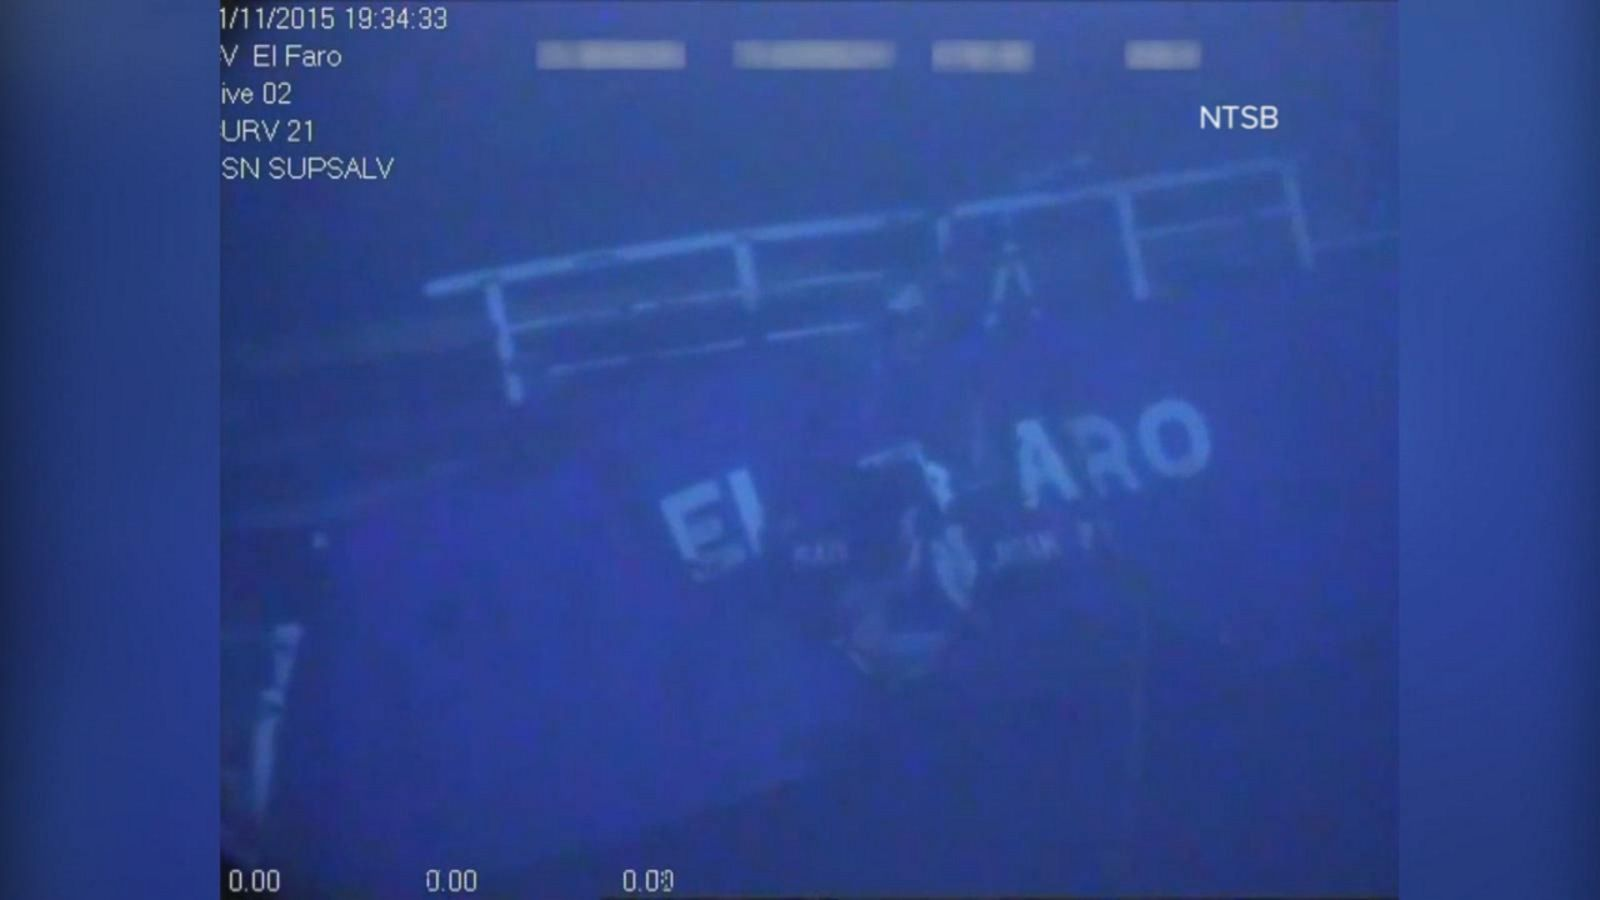 El Faro Captain Said The Clock Is Ticking In Chilling Final Phone